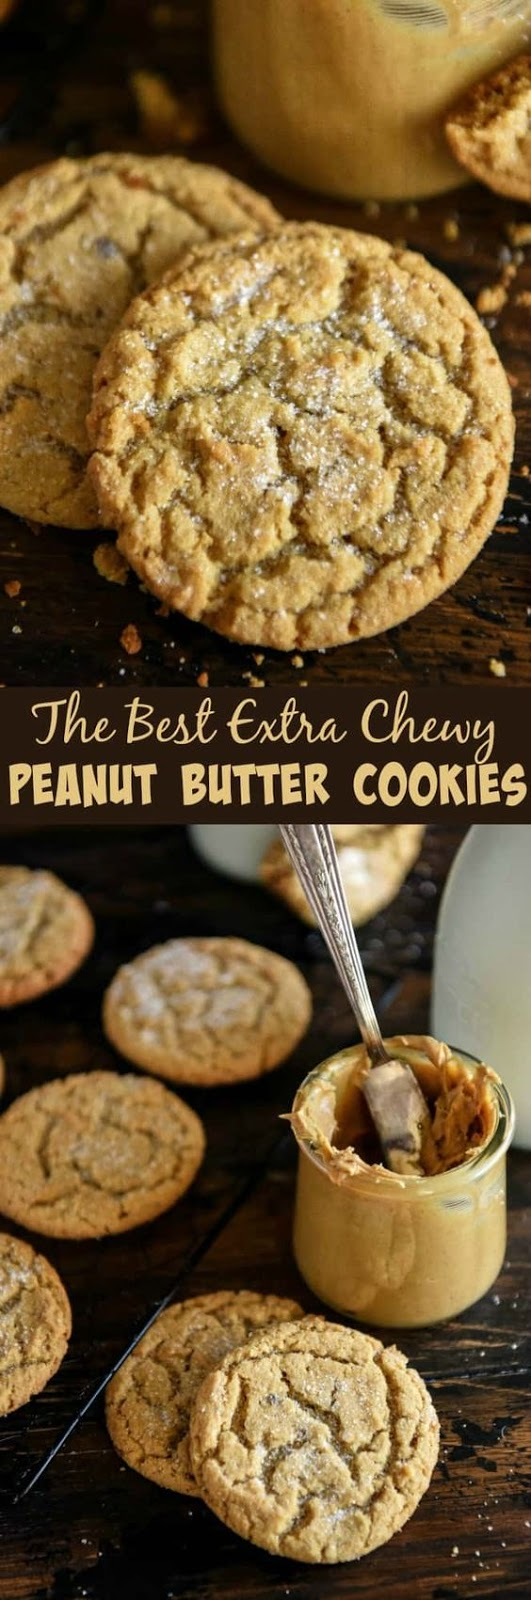 The Best Chewy Peanut Butter Cookies Recipe